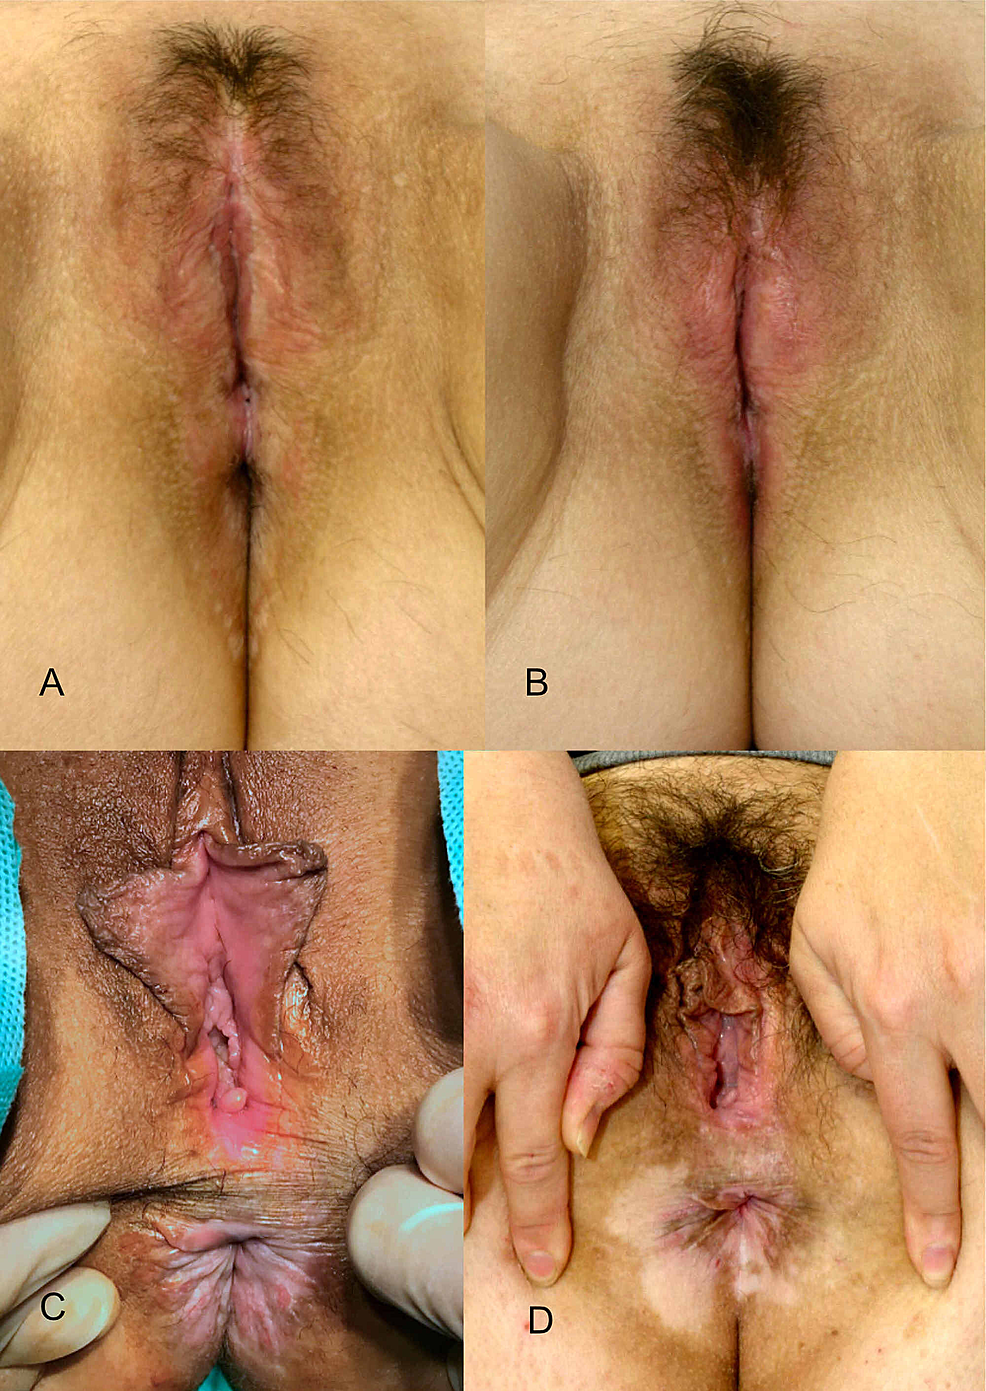 Preoperative-and-postoperative-results-after-24-months-and-one-single-treatment.